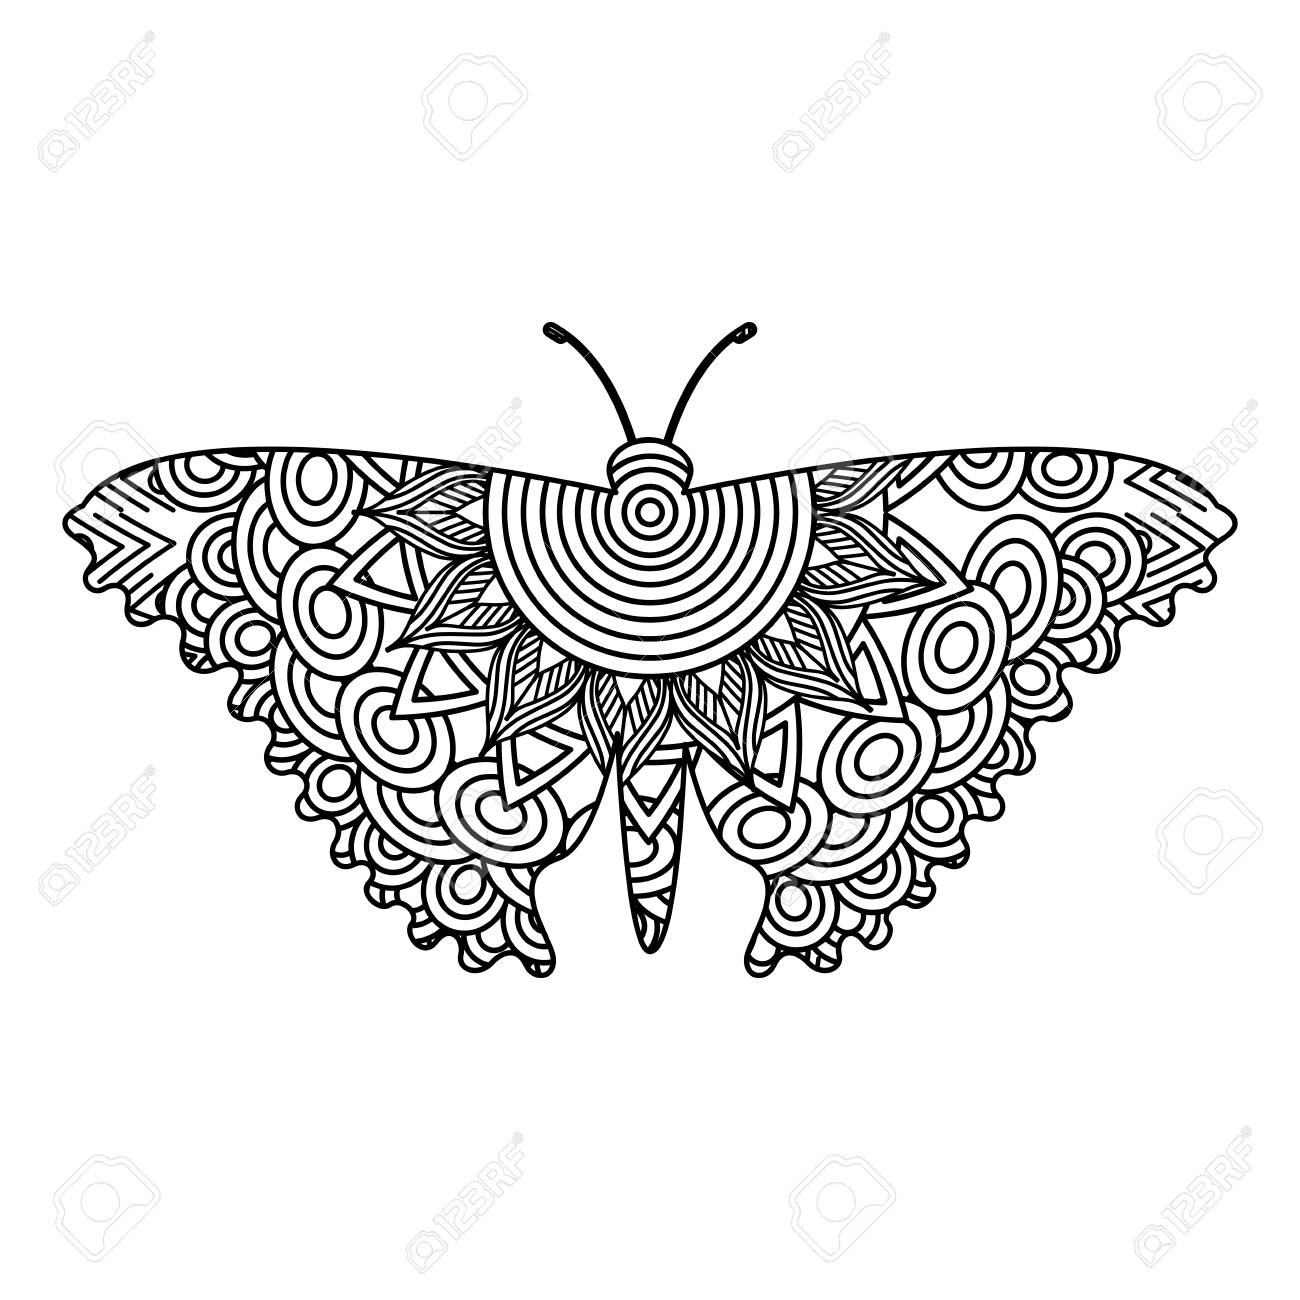 Hand drawn for adult coloring pages with butterfly sketch vector illustration stock vector 93871399